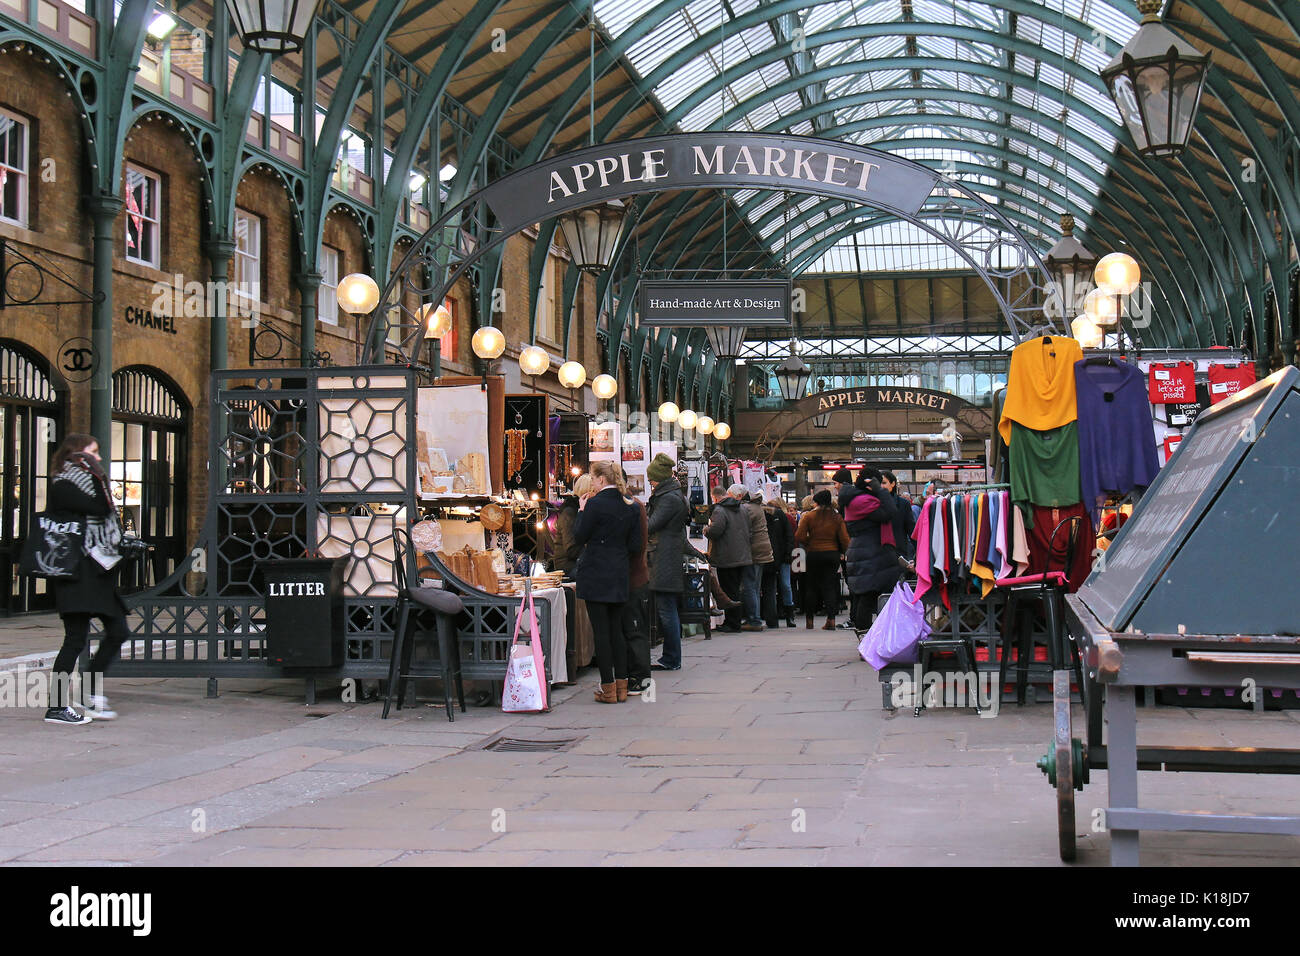 Covent garden flower market interior small 2 - London Uk February 10 Famous Apple Market Inside Covent Garden With People Walking